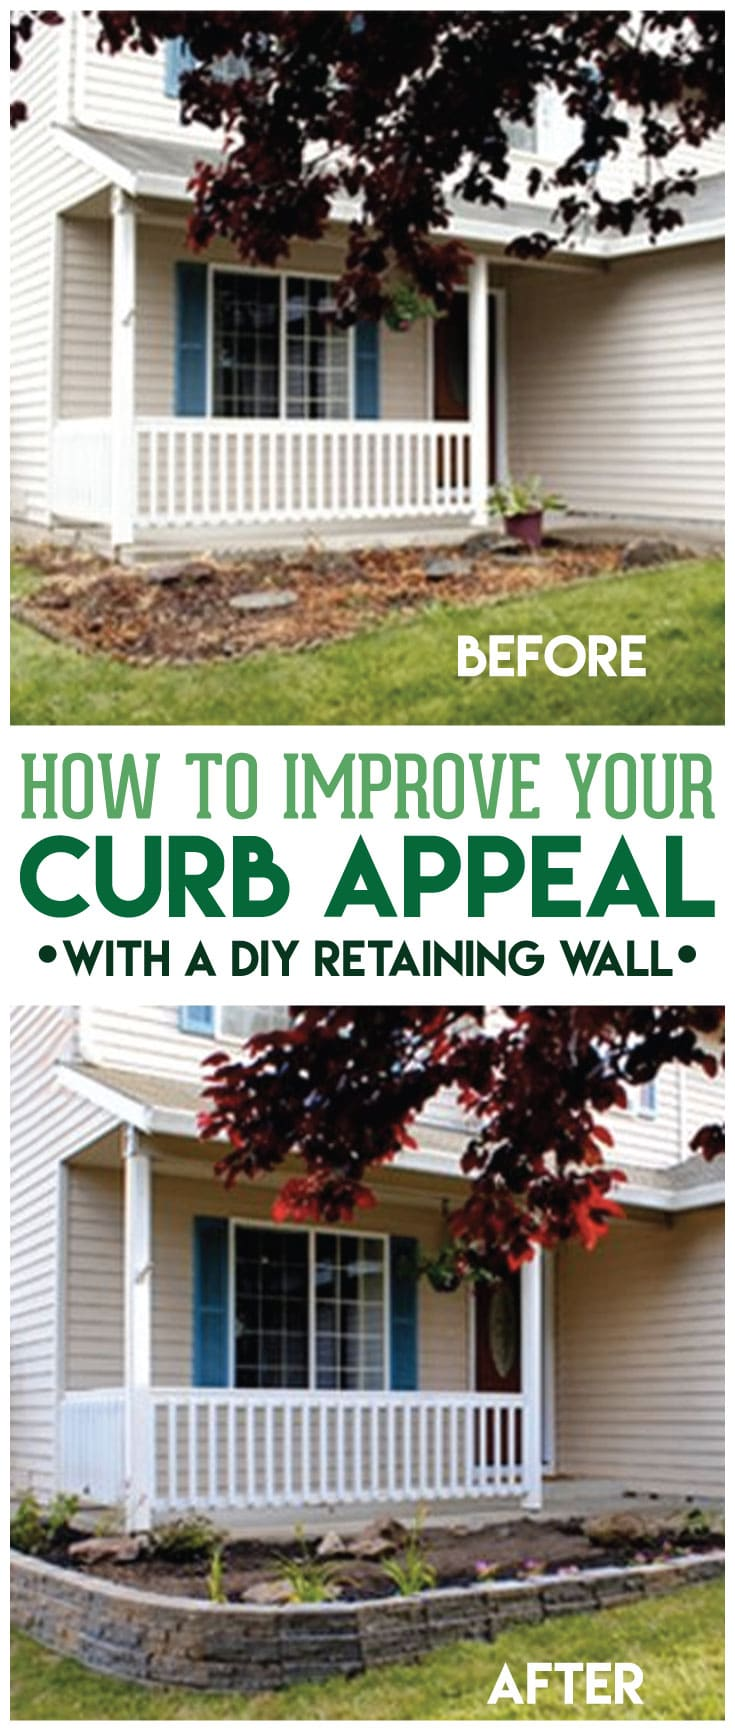 Learn how to make a retaining wall to drastically improve your curb appeal in the easiest and simple way in just a weekend WITHOUT needing professionals! #retainingwall #DIYretainingwall